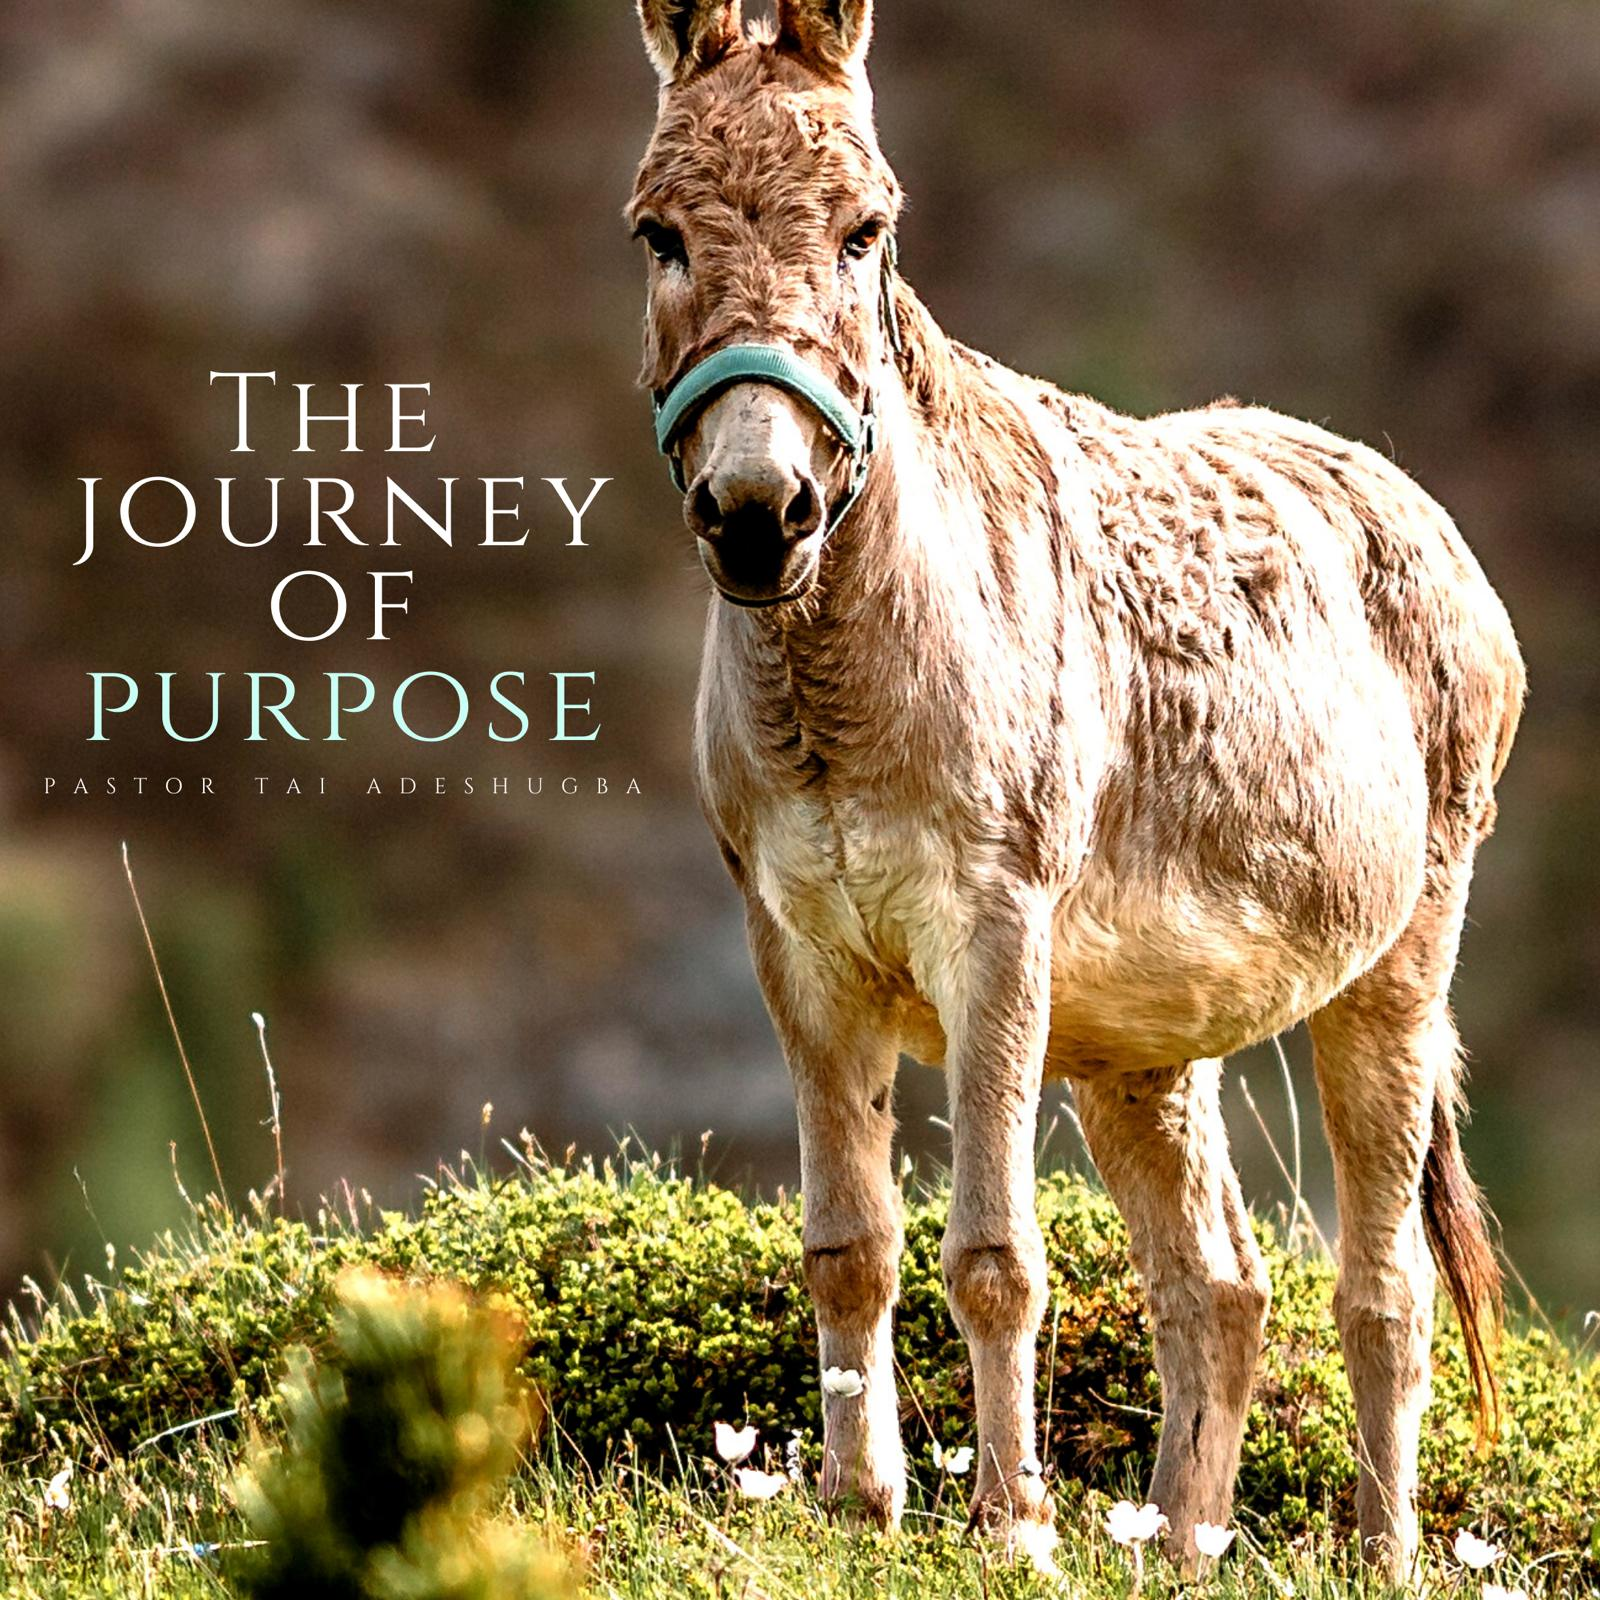 The Journey to Purpose